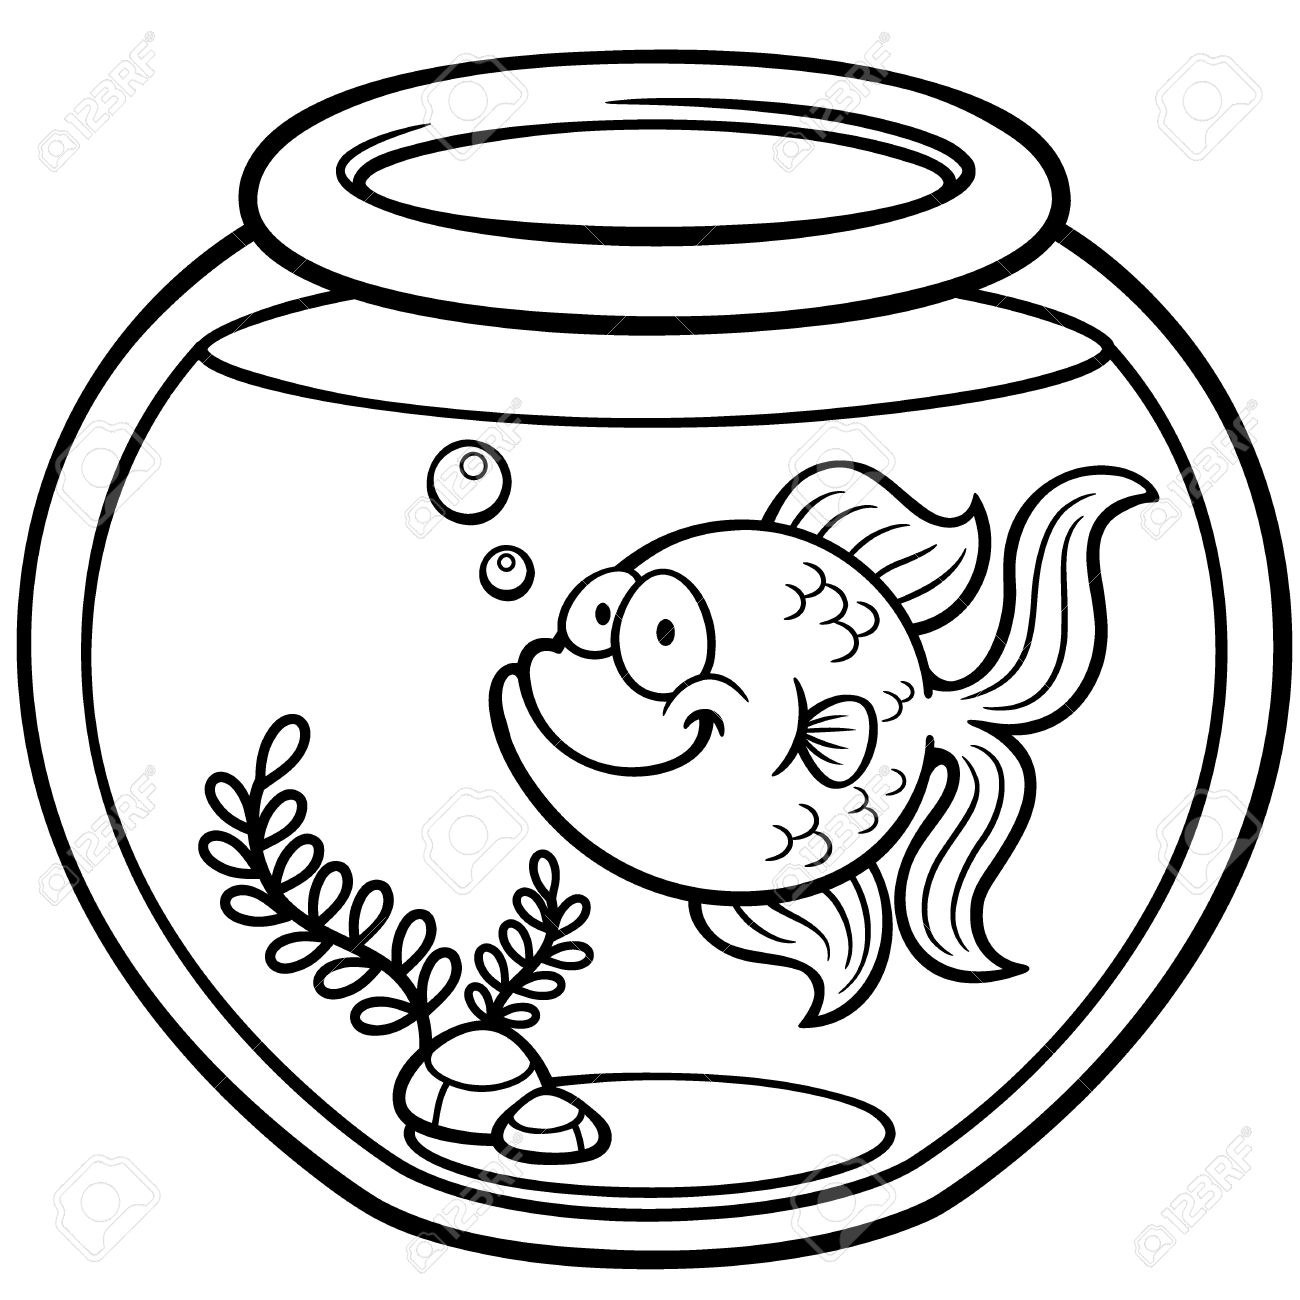 goldfish clipart black and white 6 | Clipart Station for Goldfish Clipart Black And White  197uhy